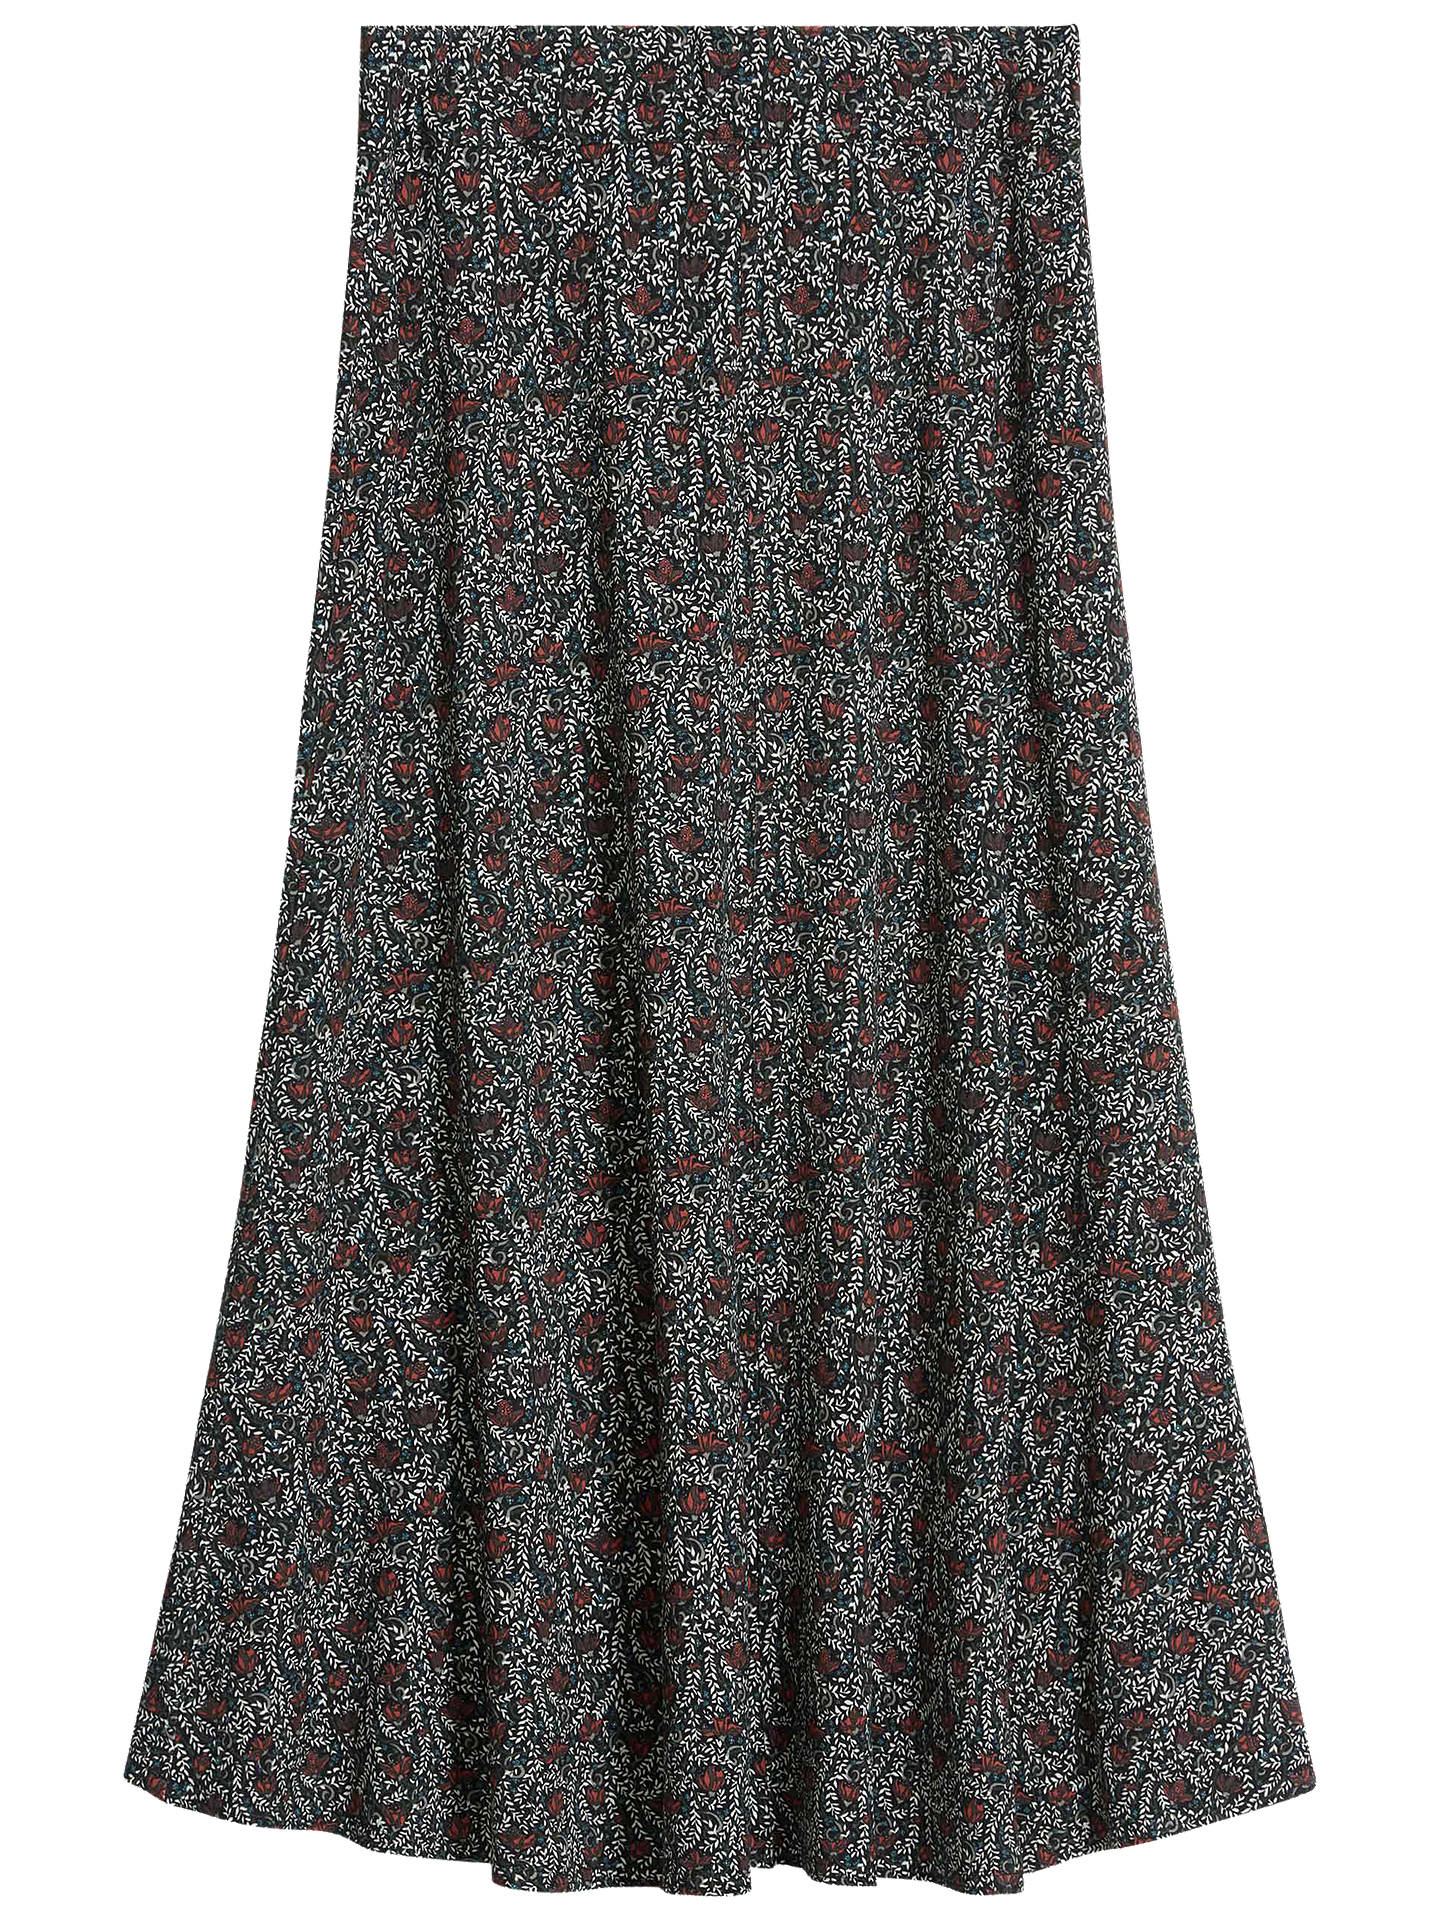 BuyBrora Liberty Jersey Flared Maxi Skirt, Clay Vine, 12 Online at johnlewis.com